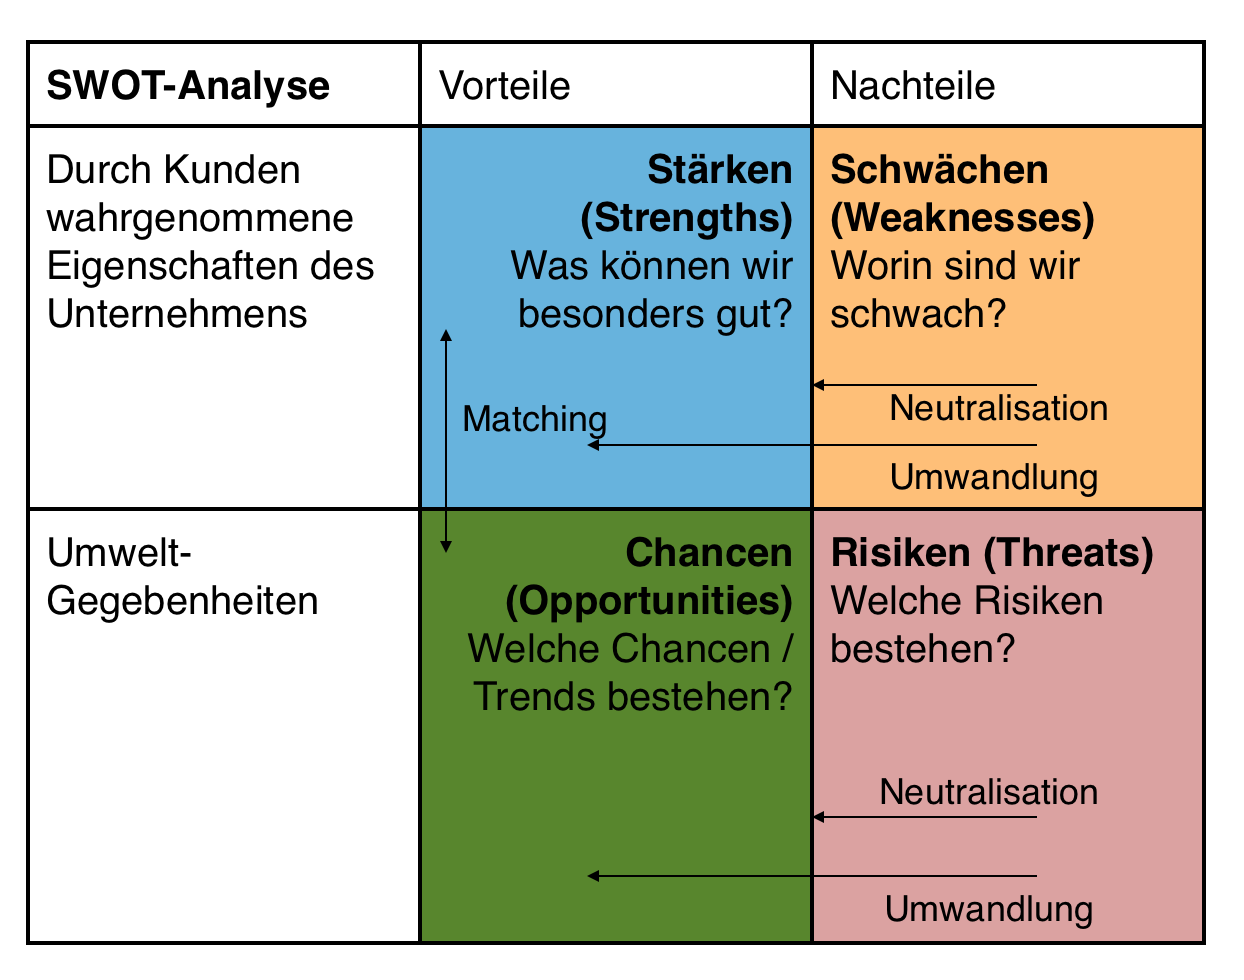 SWOT-Analyse: Matrix Darstellung